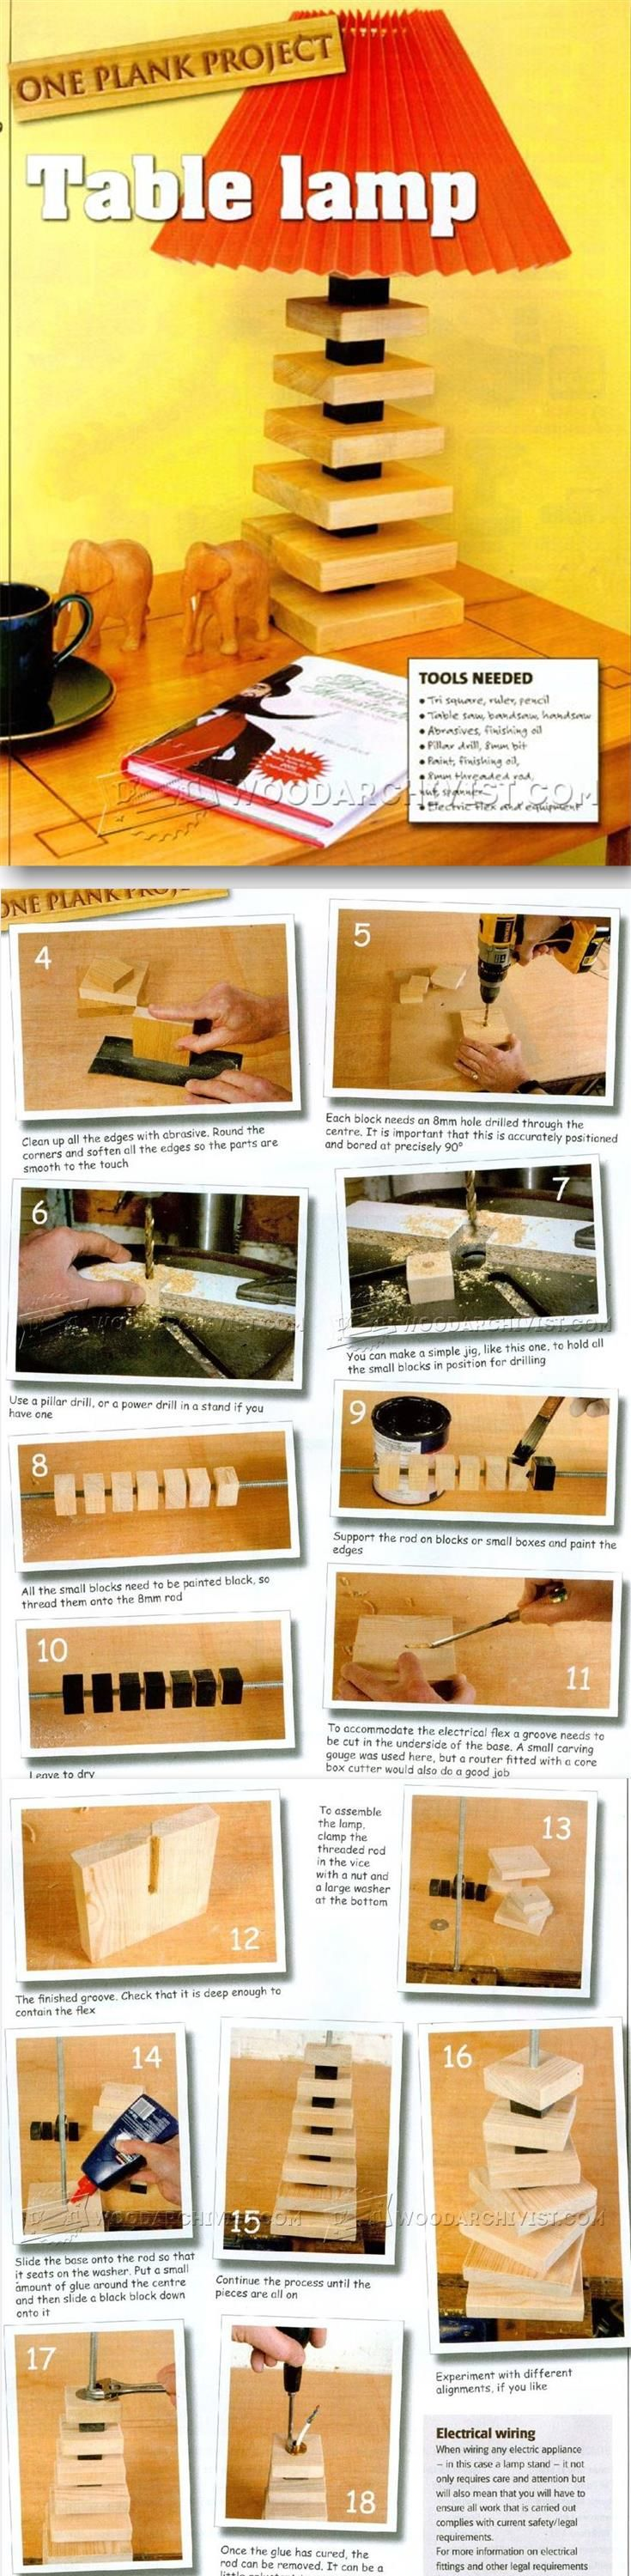 Table Lamp Plans - Woodworking Plans and Projects | WoodArchivist.com